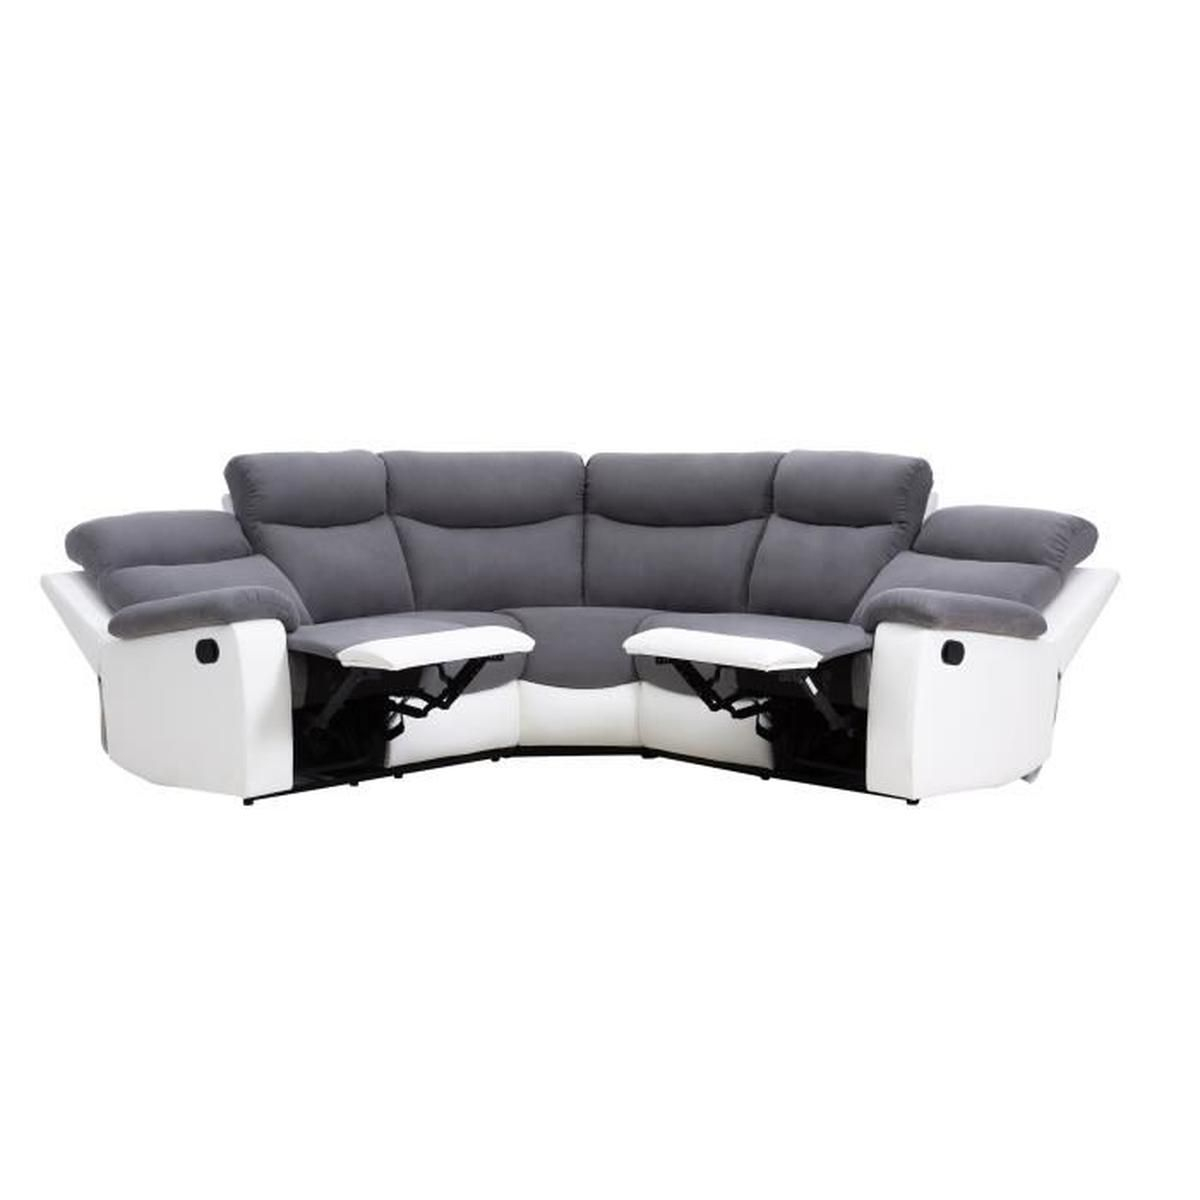 Canape angle relax electrique Achat Vente Canape angle